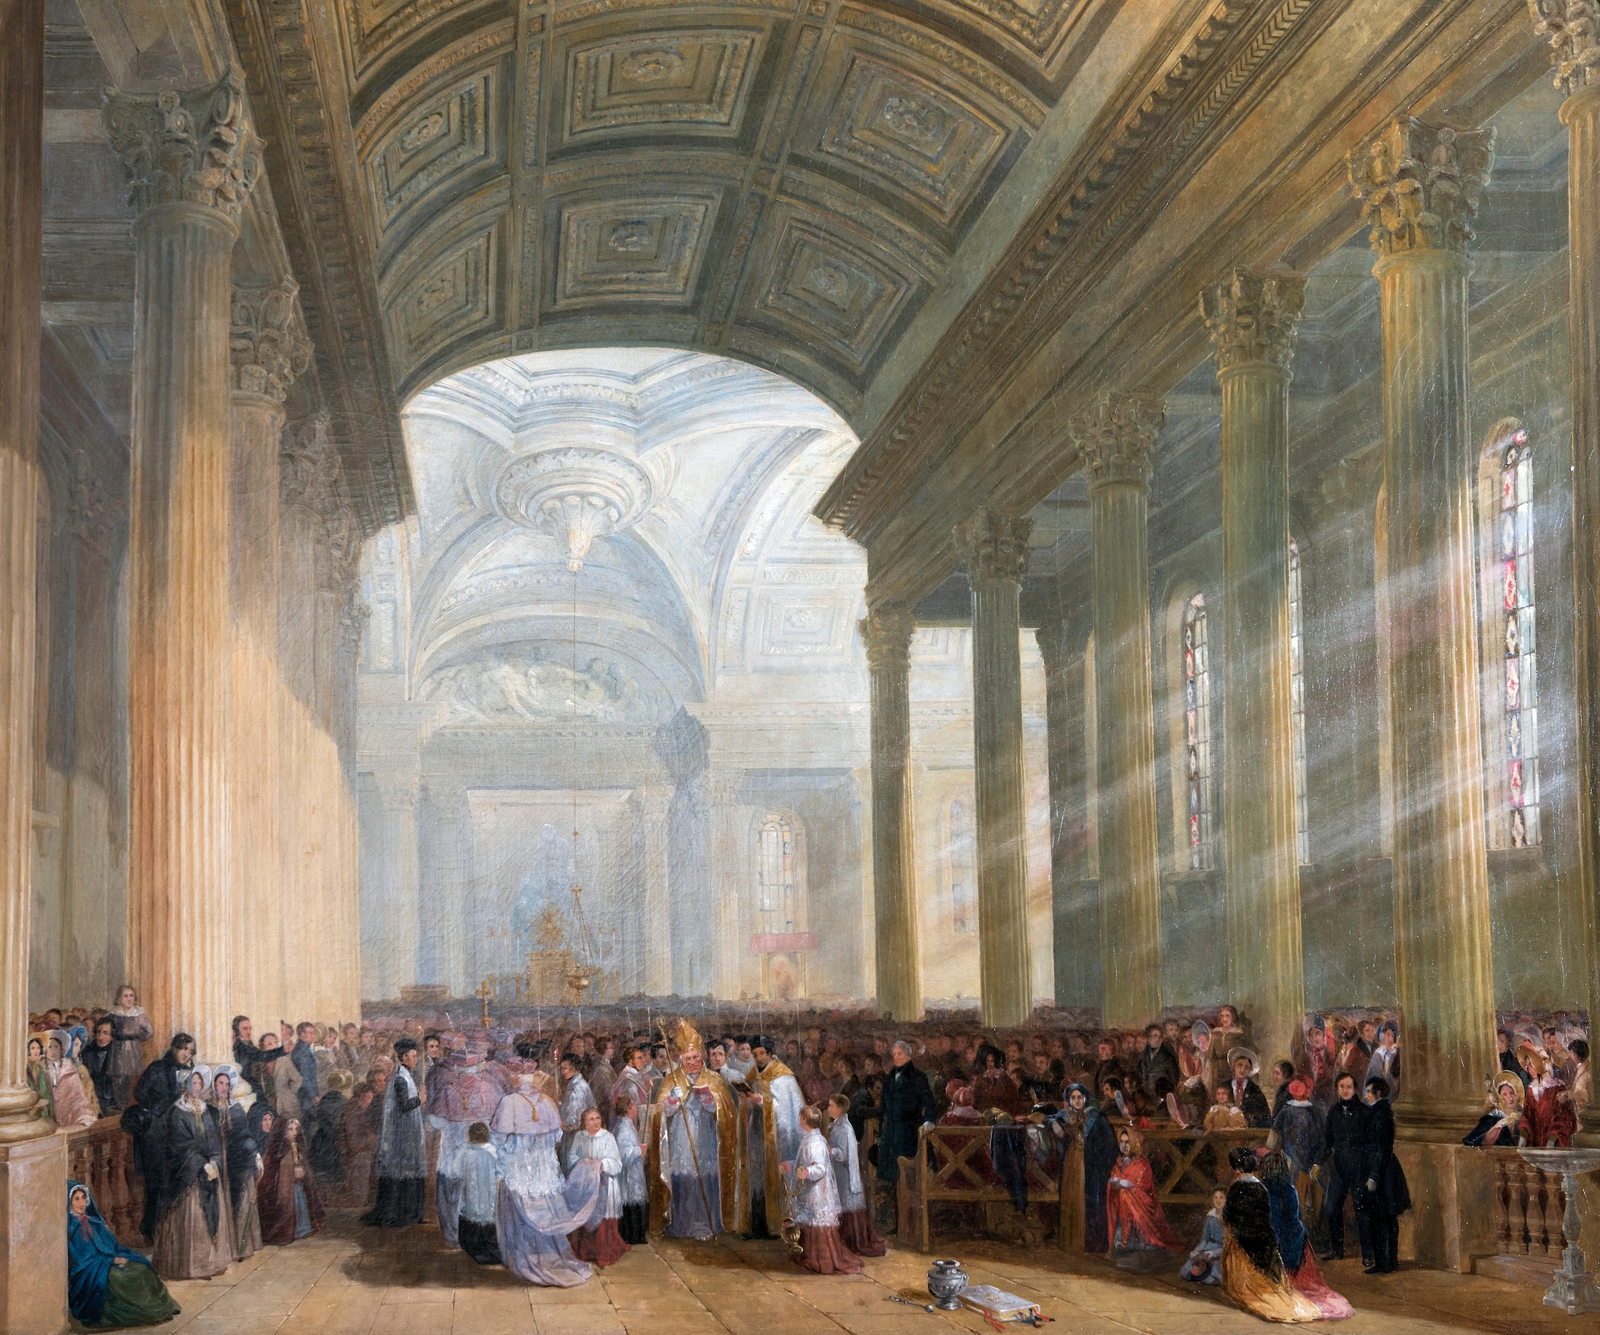 Image - The Consecration of the Roman Catholic Church of St. Mary's, Pope's Quay, Cork c. 1841 by James Mahony, ARHA, c.1810-79. Image courtesy of and copyright Ireland's Great Hunger Museum at Quinnipiac University